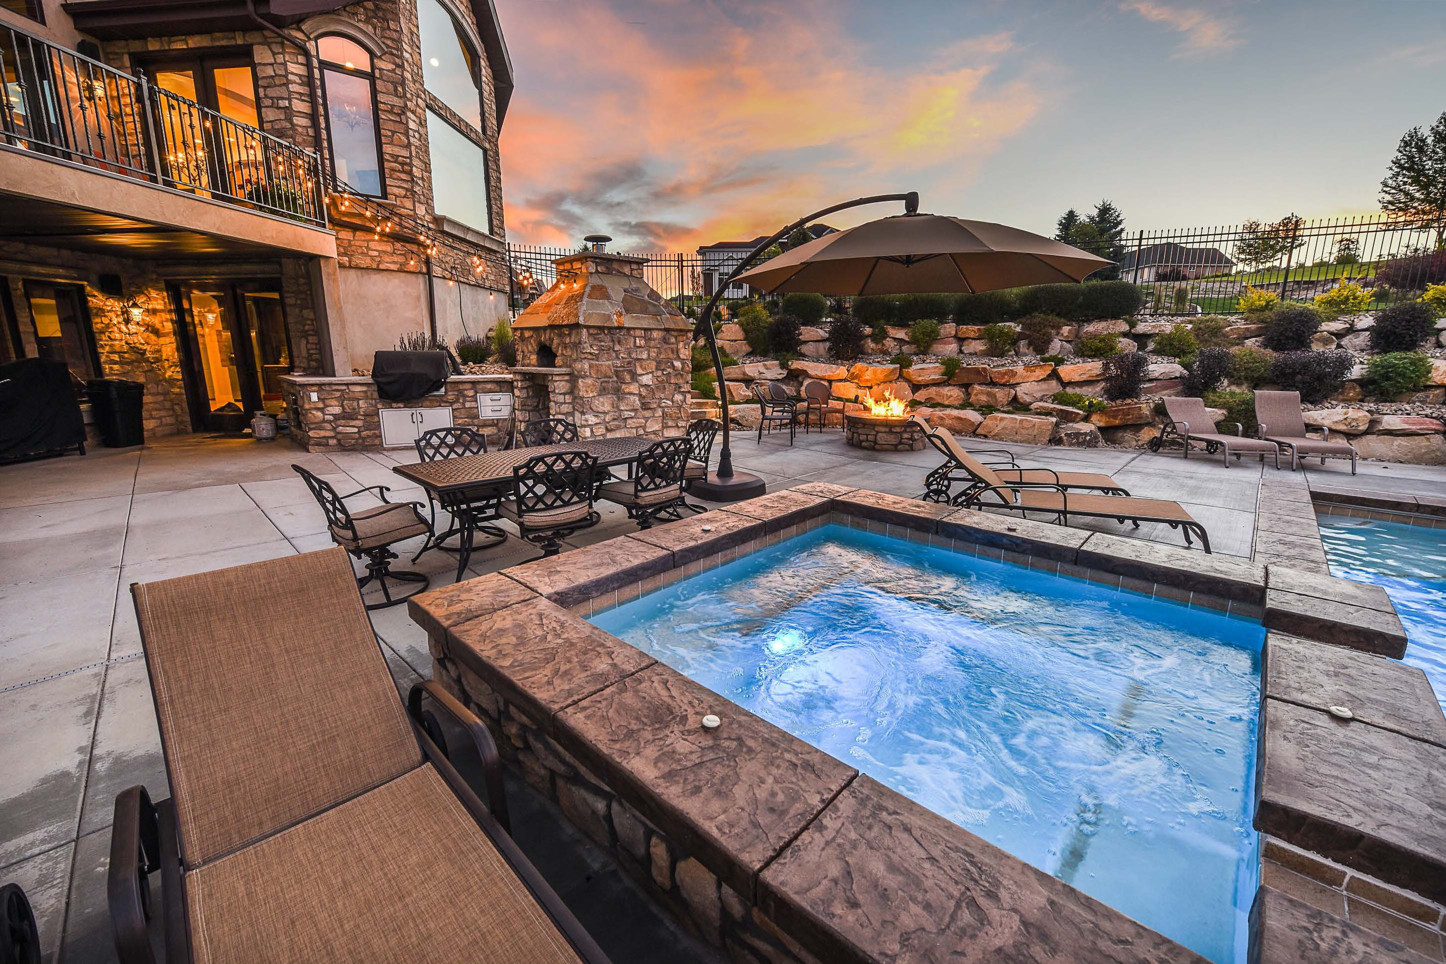 Deep Blue Pools and Spas near Salt Lake City